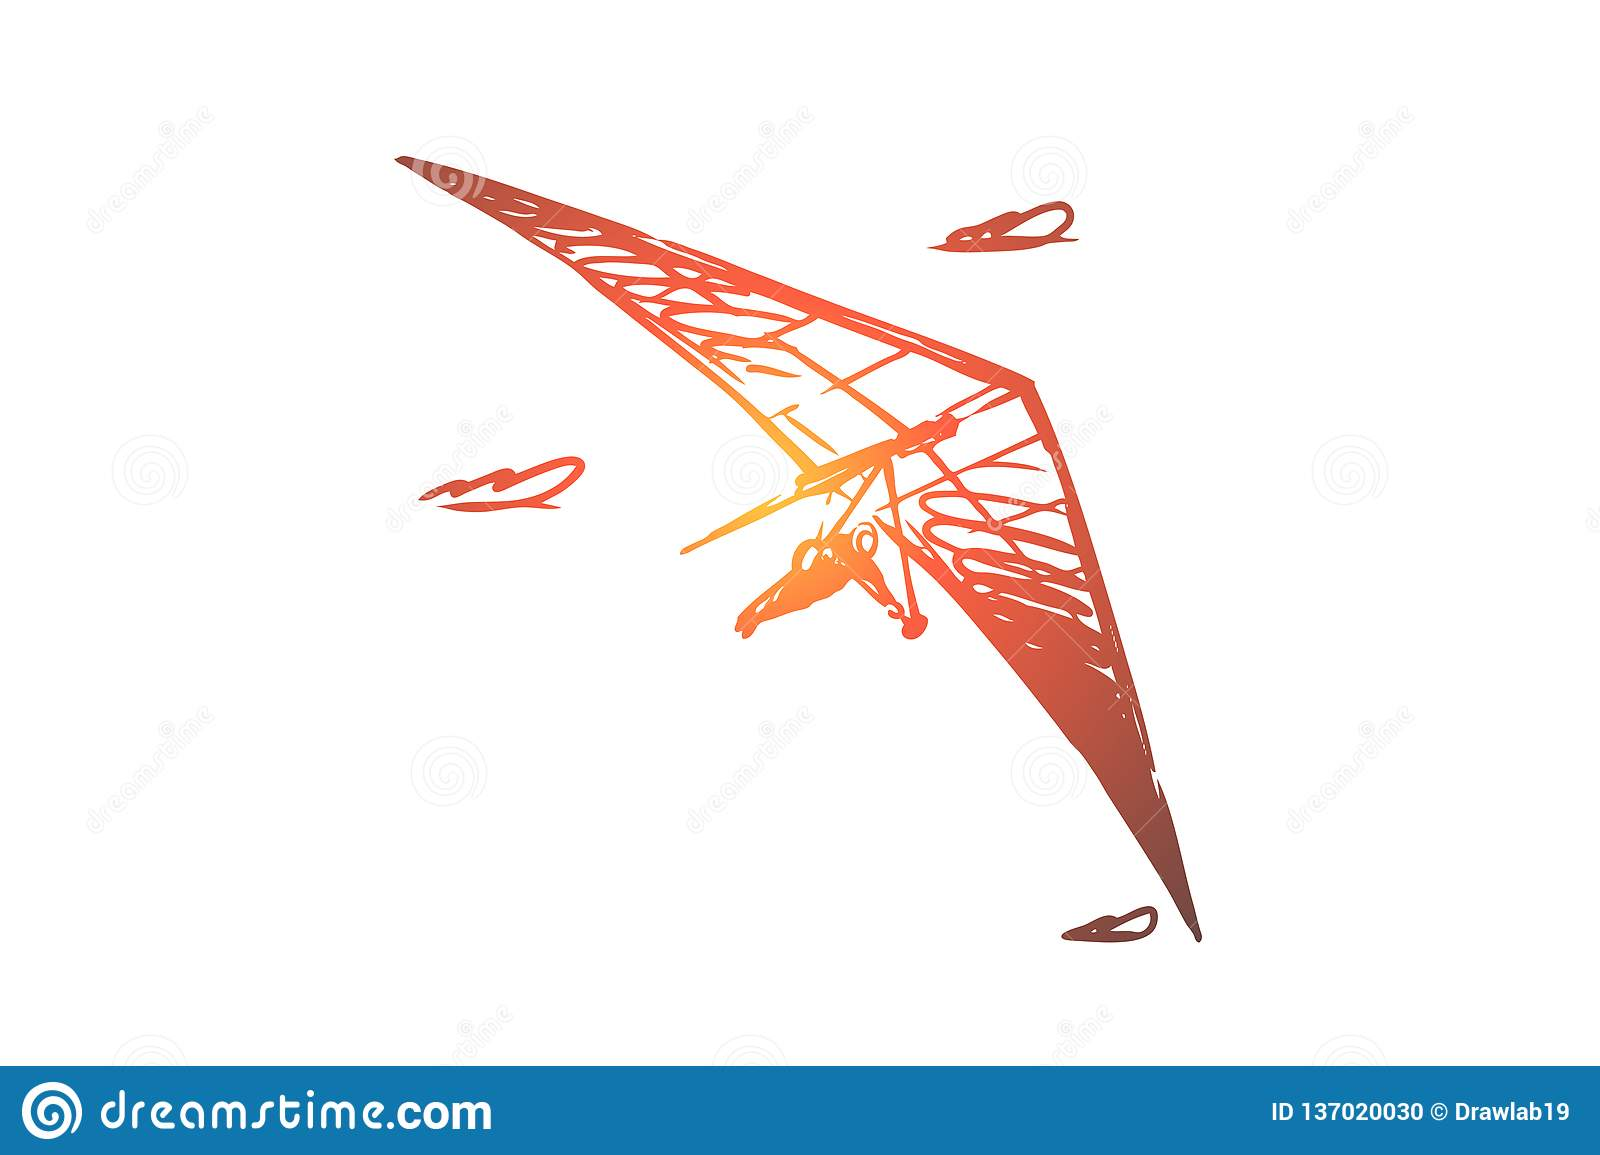 Sport Flying Hang Glider Extreme Sky Sport Fly Concept Hand Drawn Isolated